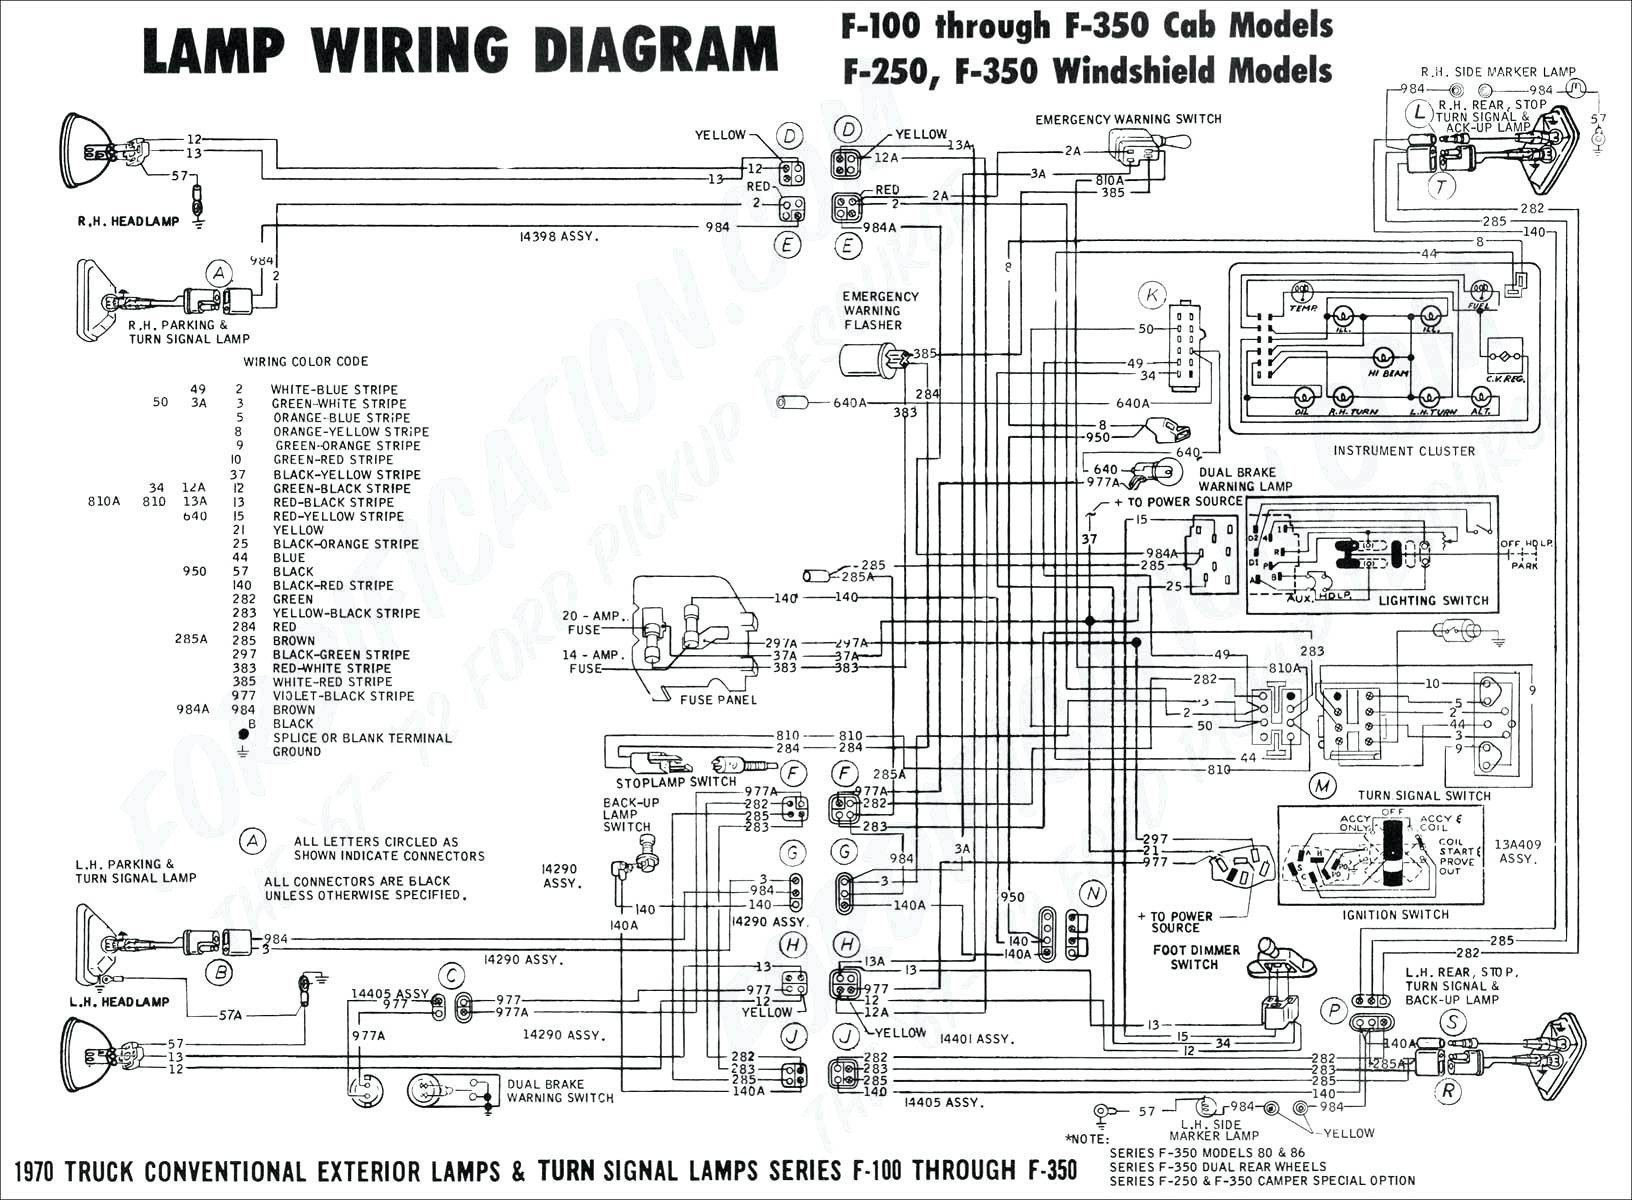 1998 ford Escort Zx2 Engine Diagram ford Ecm Wiring Diagrams Data Wiring Diagrams • Of 1998 ford Escort Zx2 Engine Diagram 1993 ford Escort Wiring Diagram Fresh Surprising 1998 ford Escort